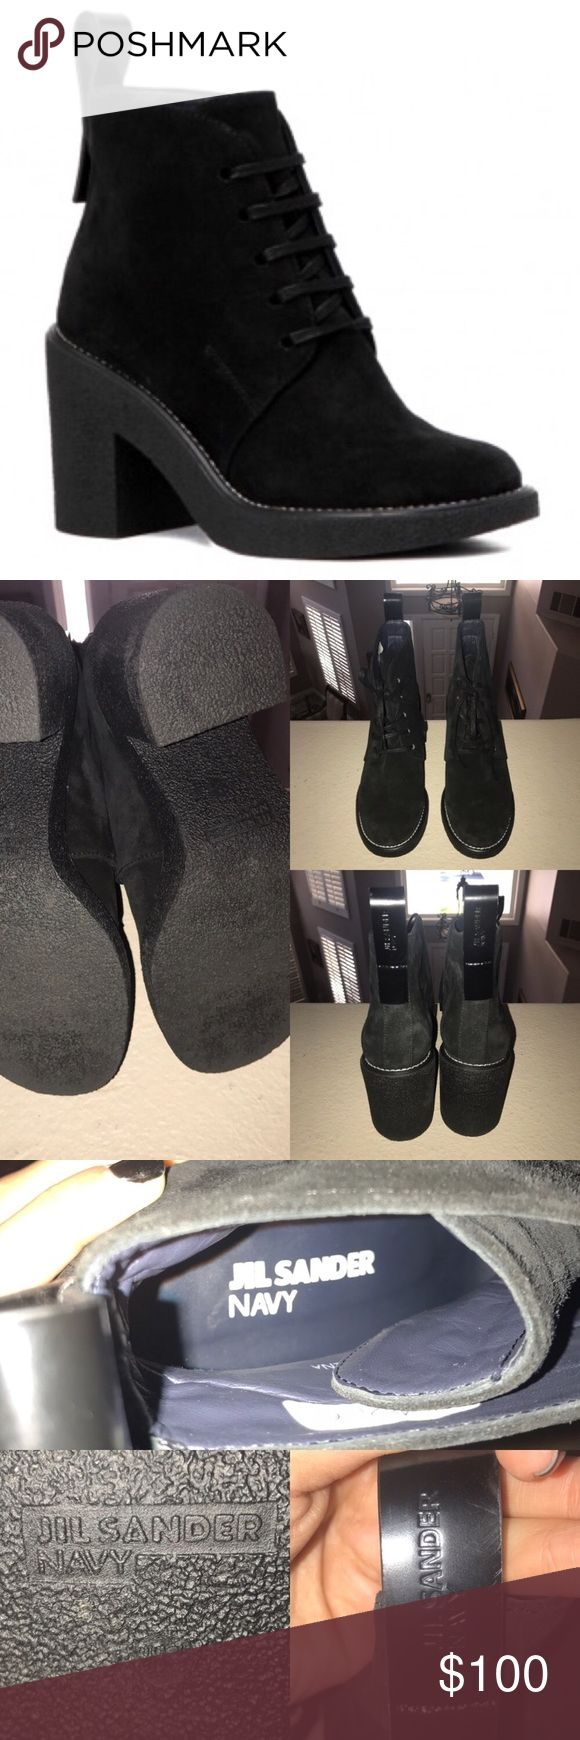 Jil Sander Black Suede Lace Up Booties Purchased in January 2017 from Galaries Lafayette in Berlin, Germany. They are are in perfect condition, were worn only once by my sister for maybe 45 minutes or so but didn't fit her properly & the store had a no return policy so she had to keep them & now they've just been sitting in her closet. I would recommend for those who wear size US 8 or 8.5  I bought them originally for 310 euros which is about $350. NO TRADES!! NO MODELING!! PRICE IS FAIR…